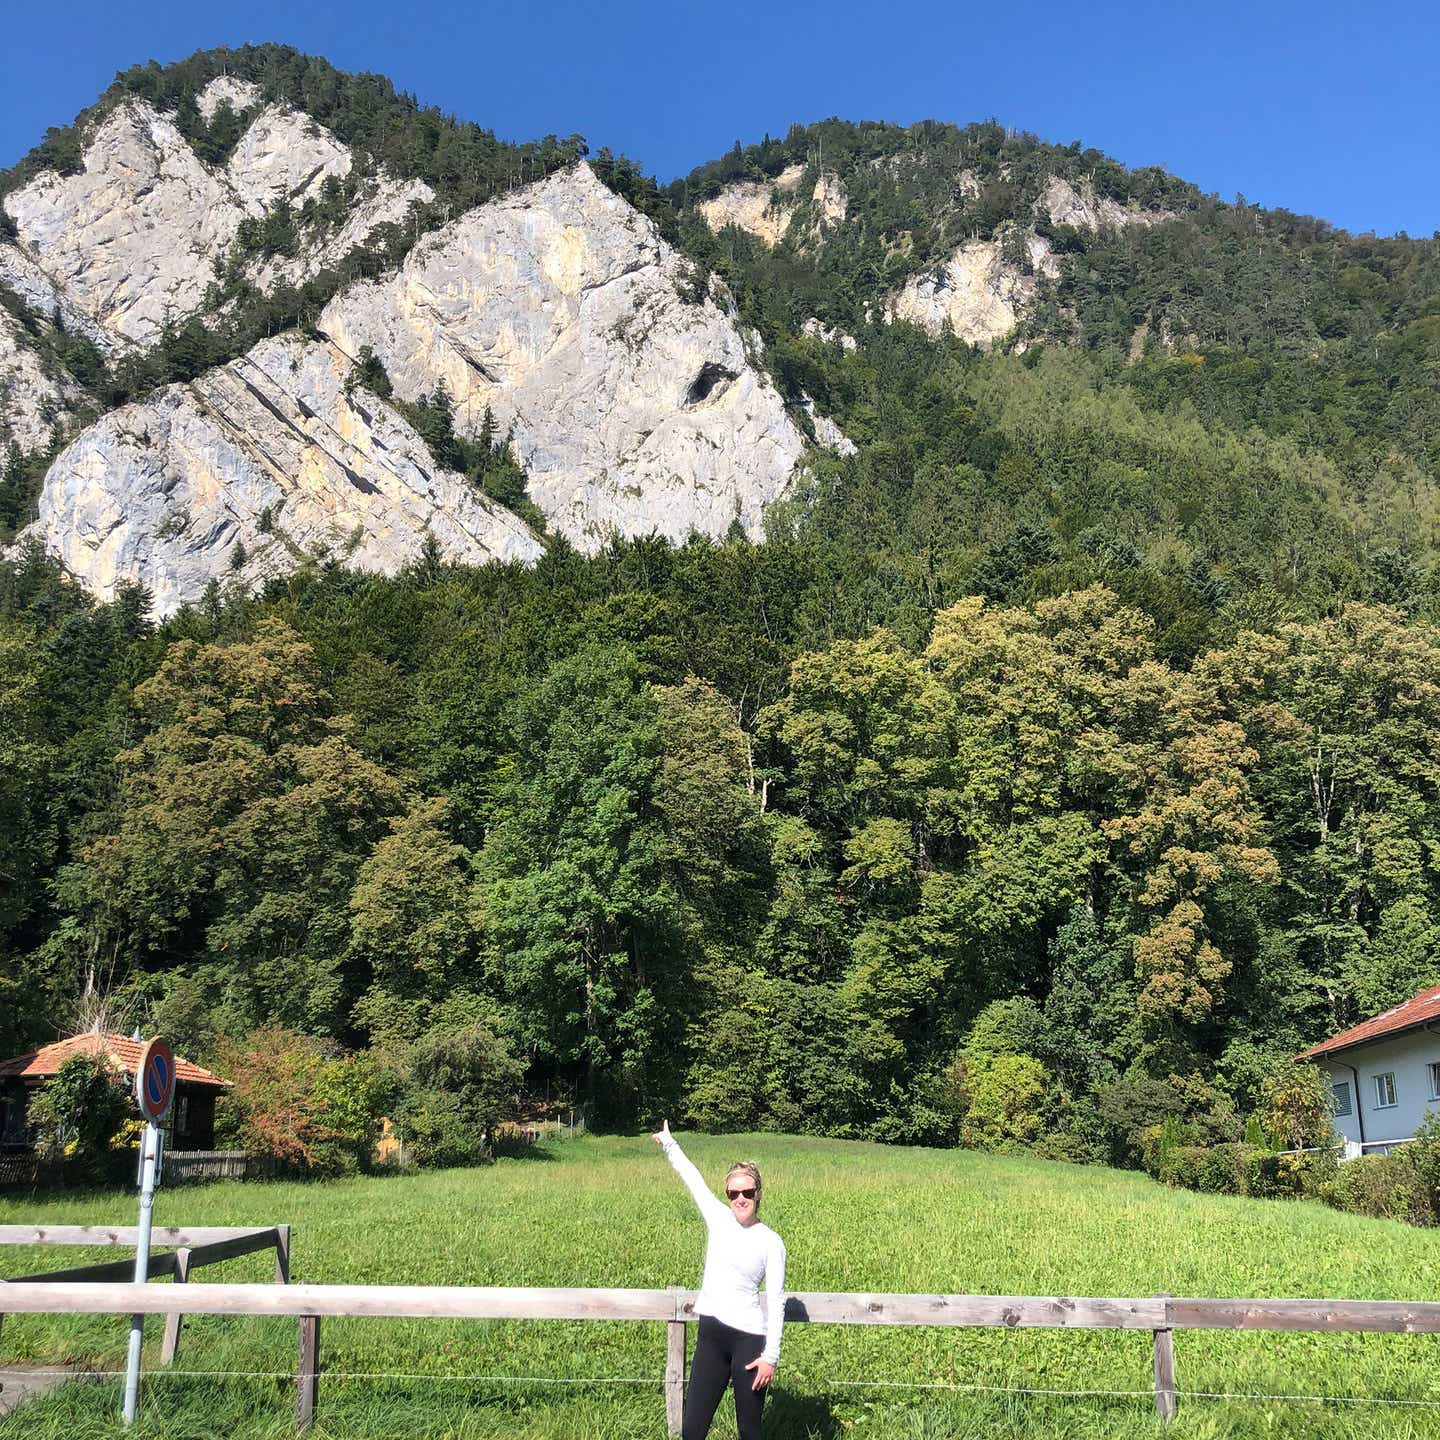 Co-author, Molly, wears a white shirt and black shorts while posing in front of a mountain in Switzerland.